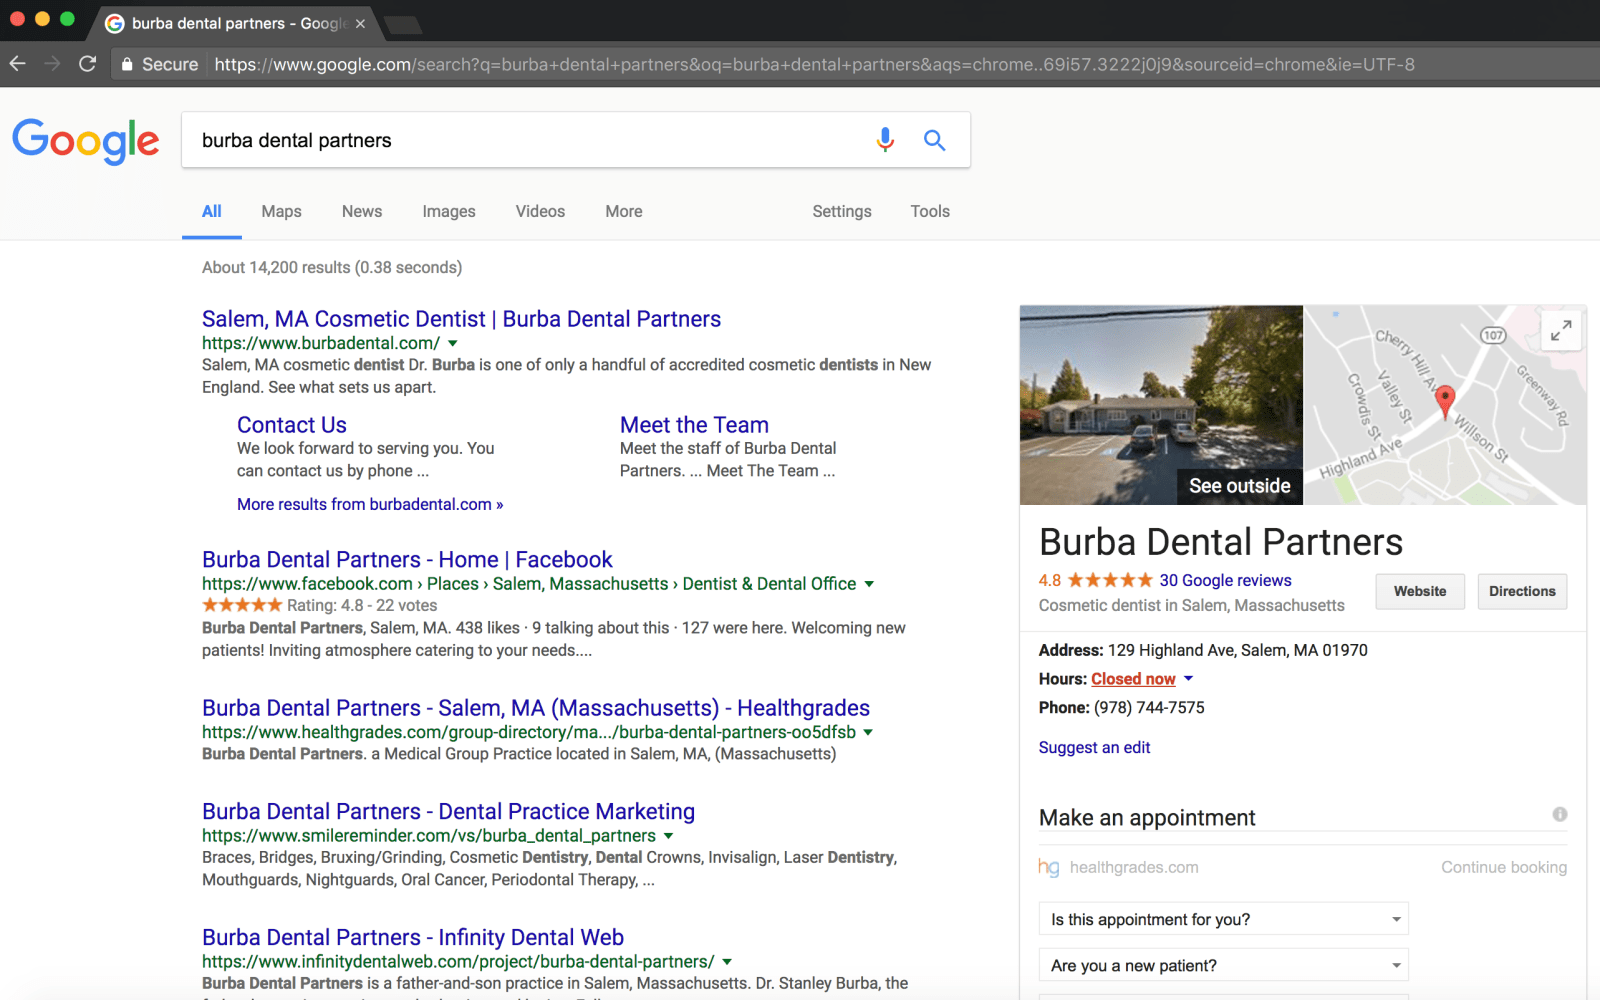 Burba Dental Partners Search Page